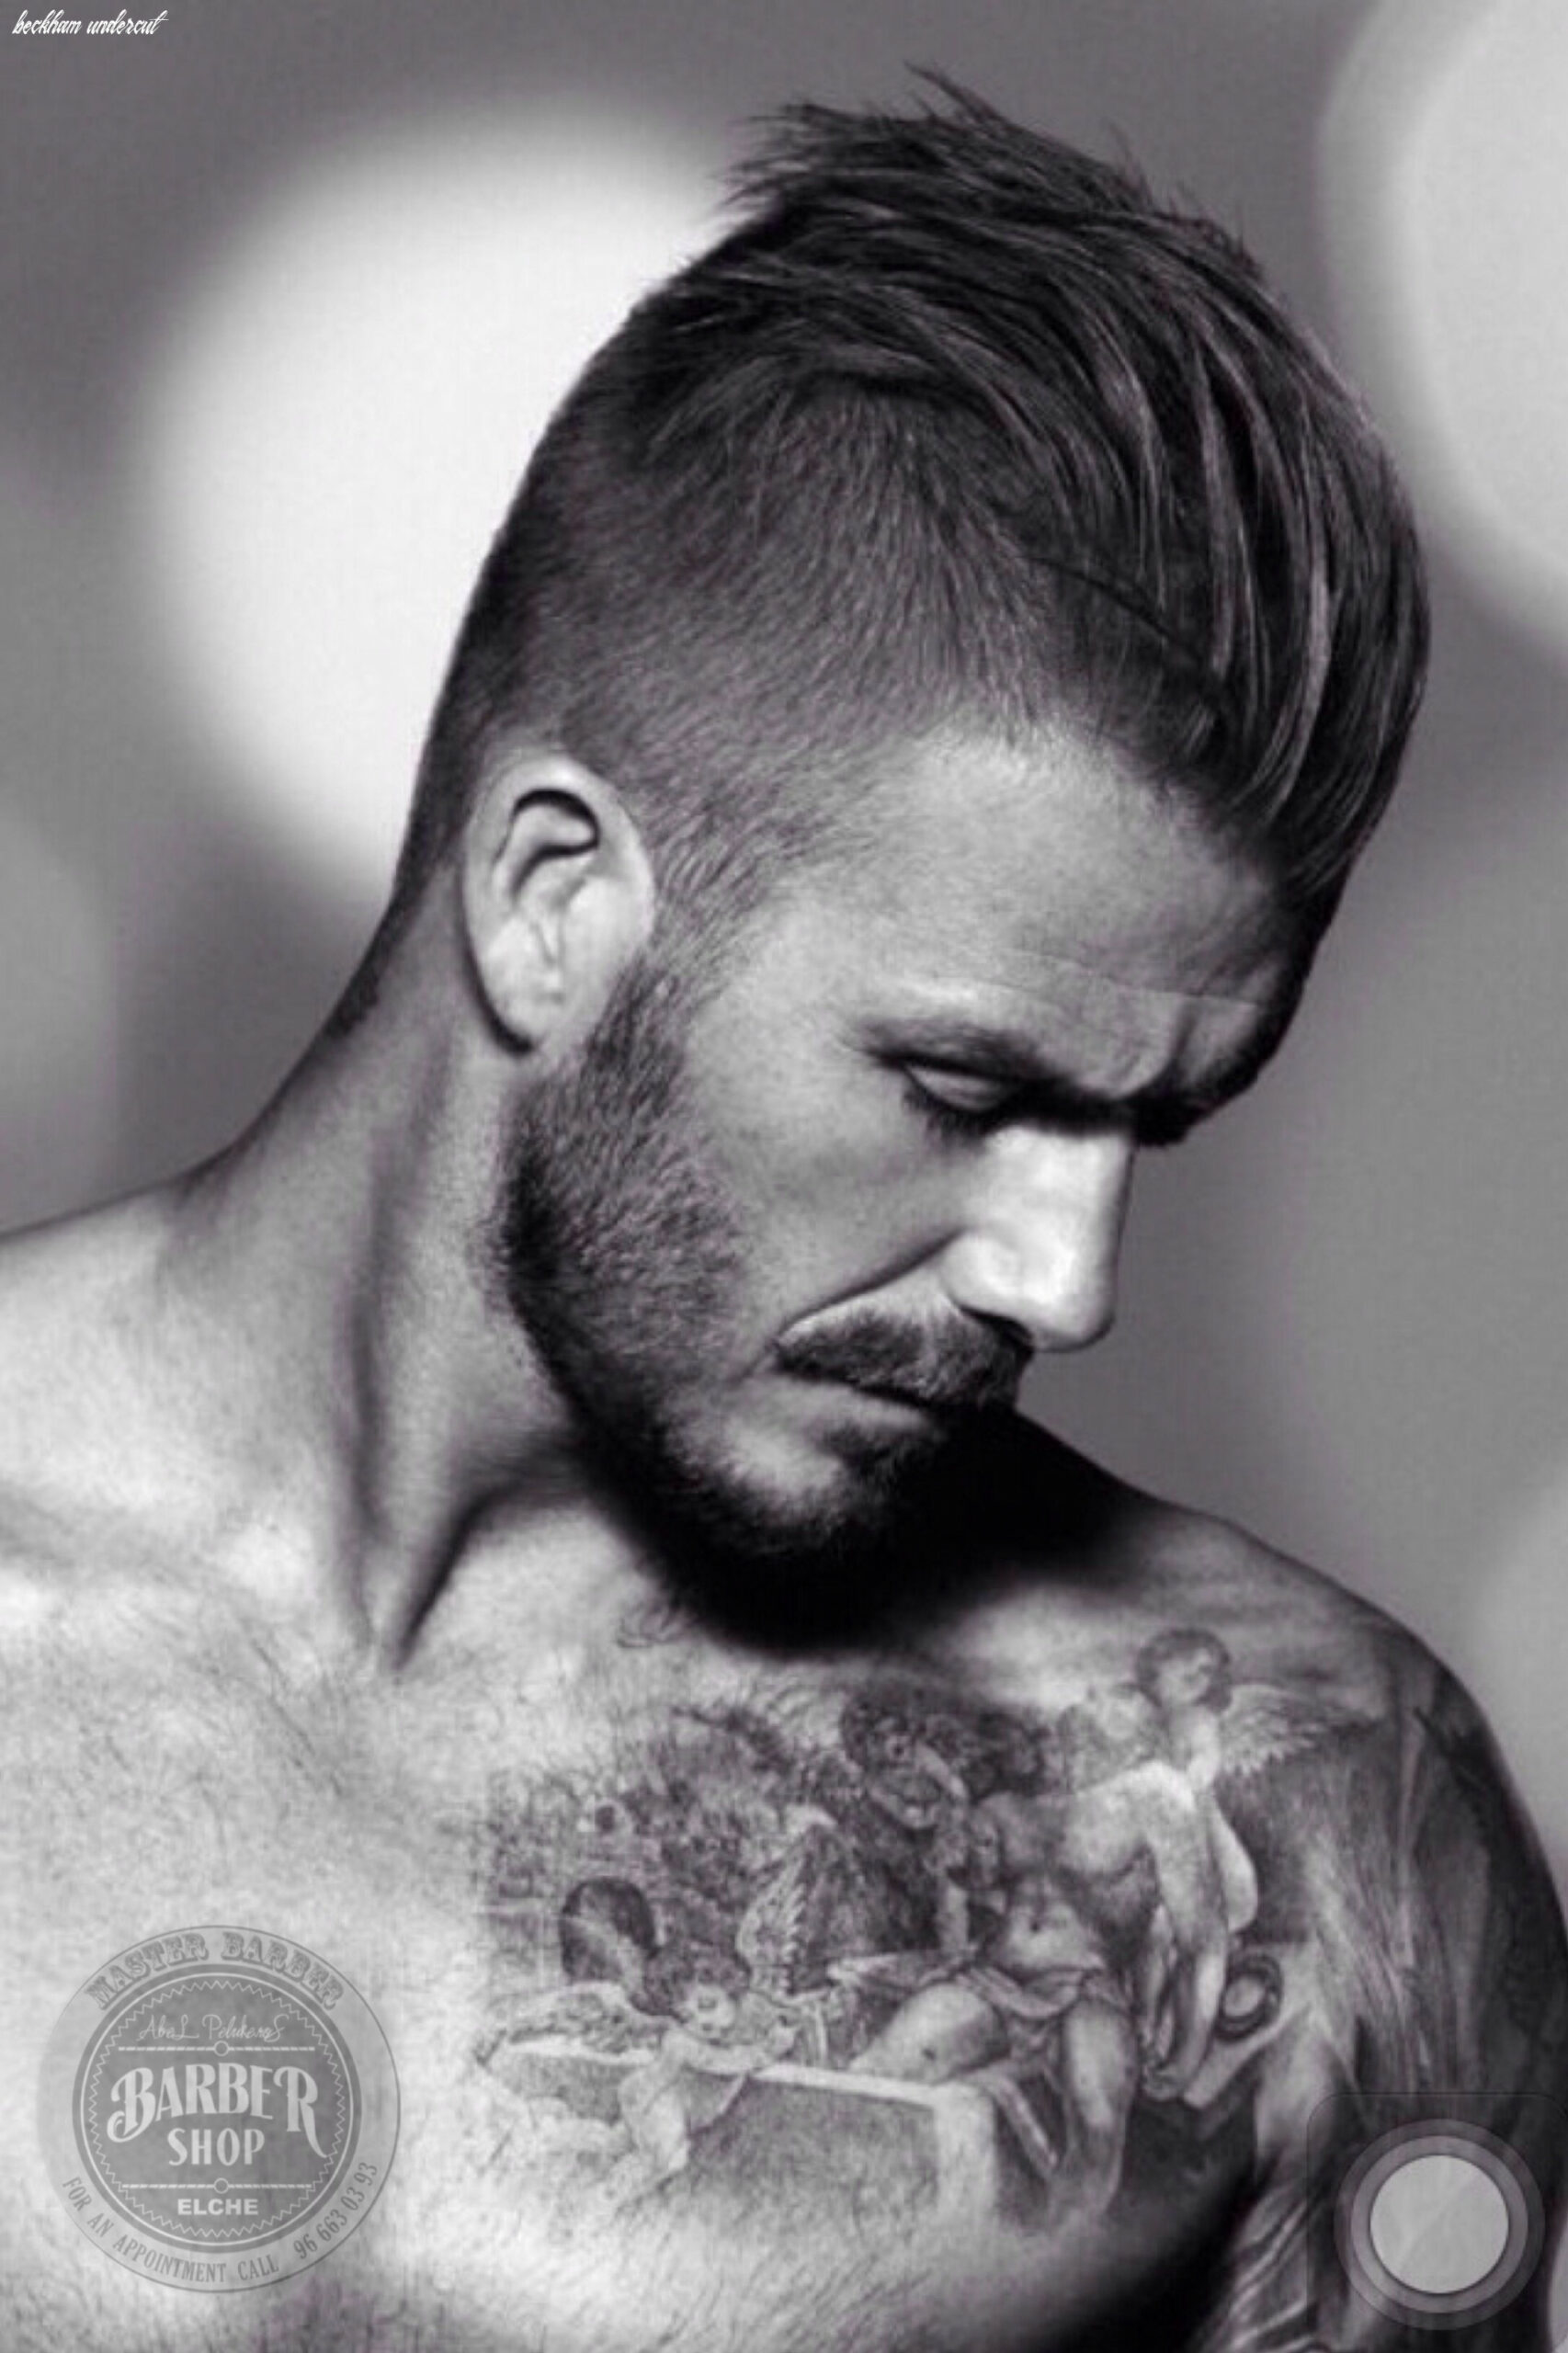 Awesome undercut hairstyle david beckham | coupe homme, coiffeurs